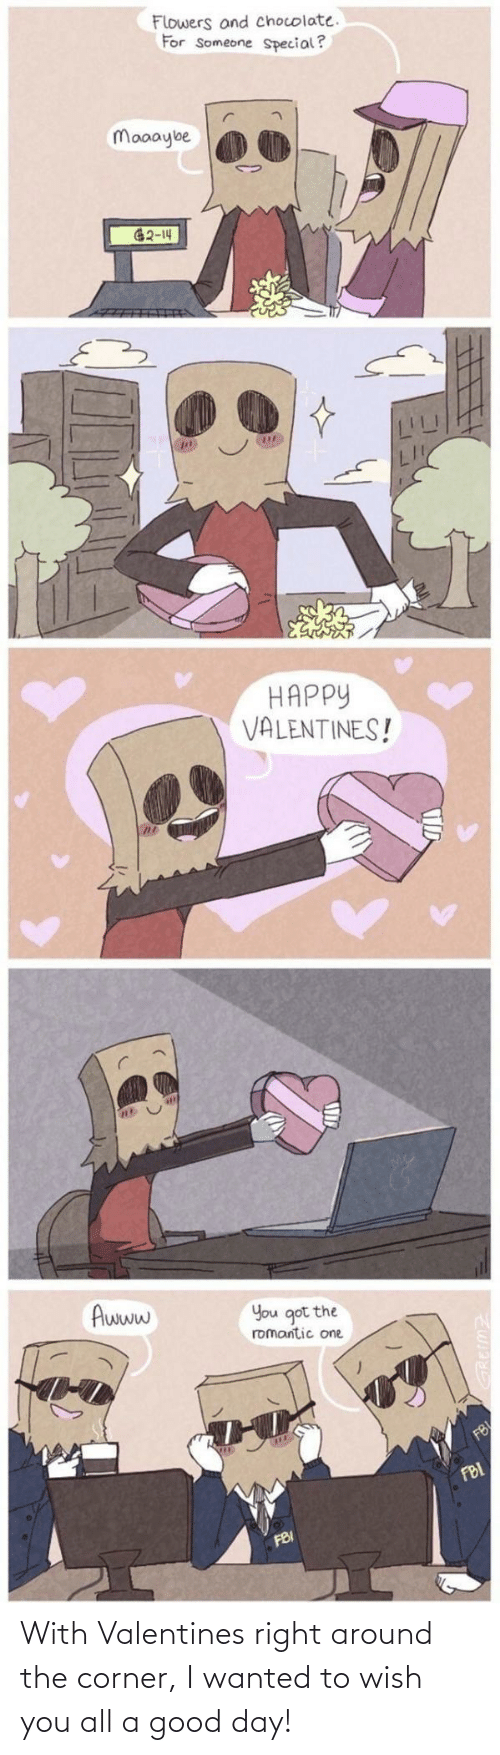 a-good-day: With Valentines right around the corner, I wanted to wish you all a good day!